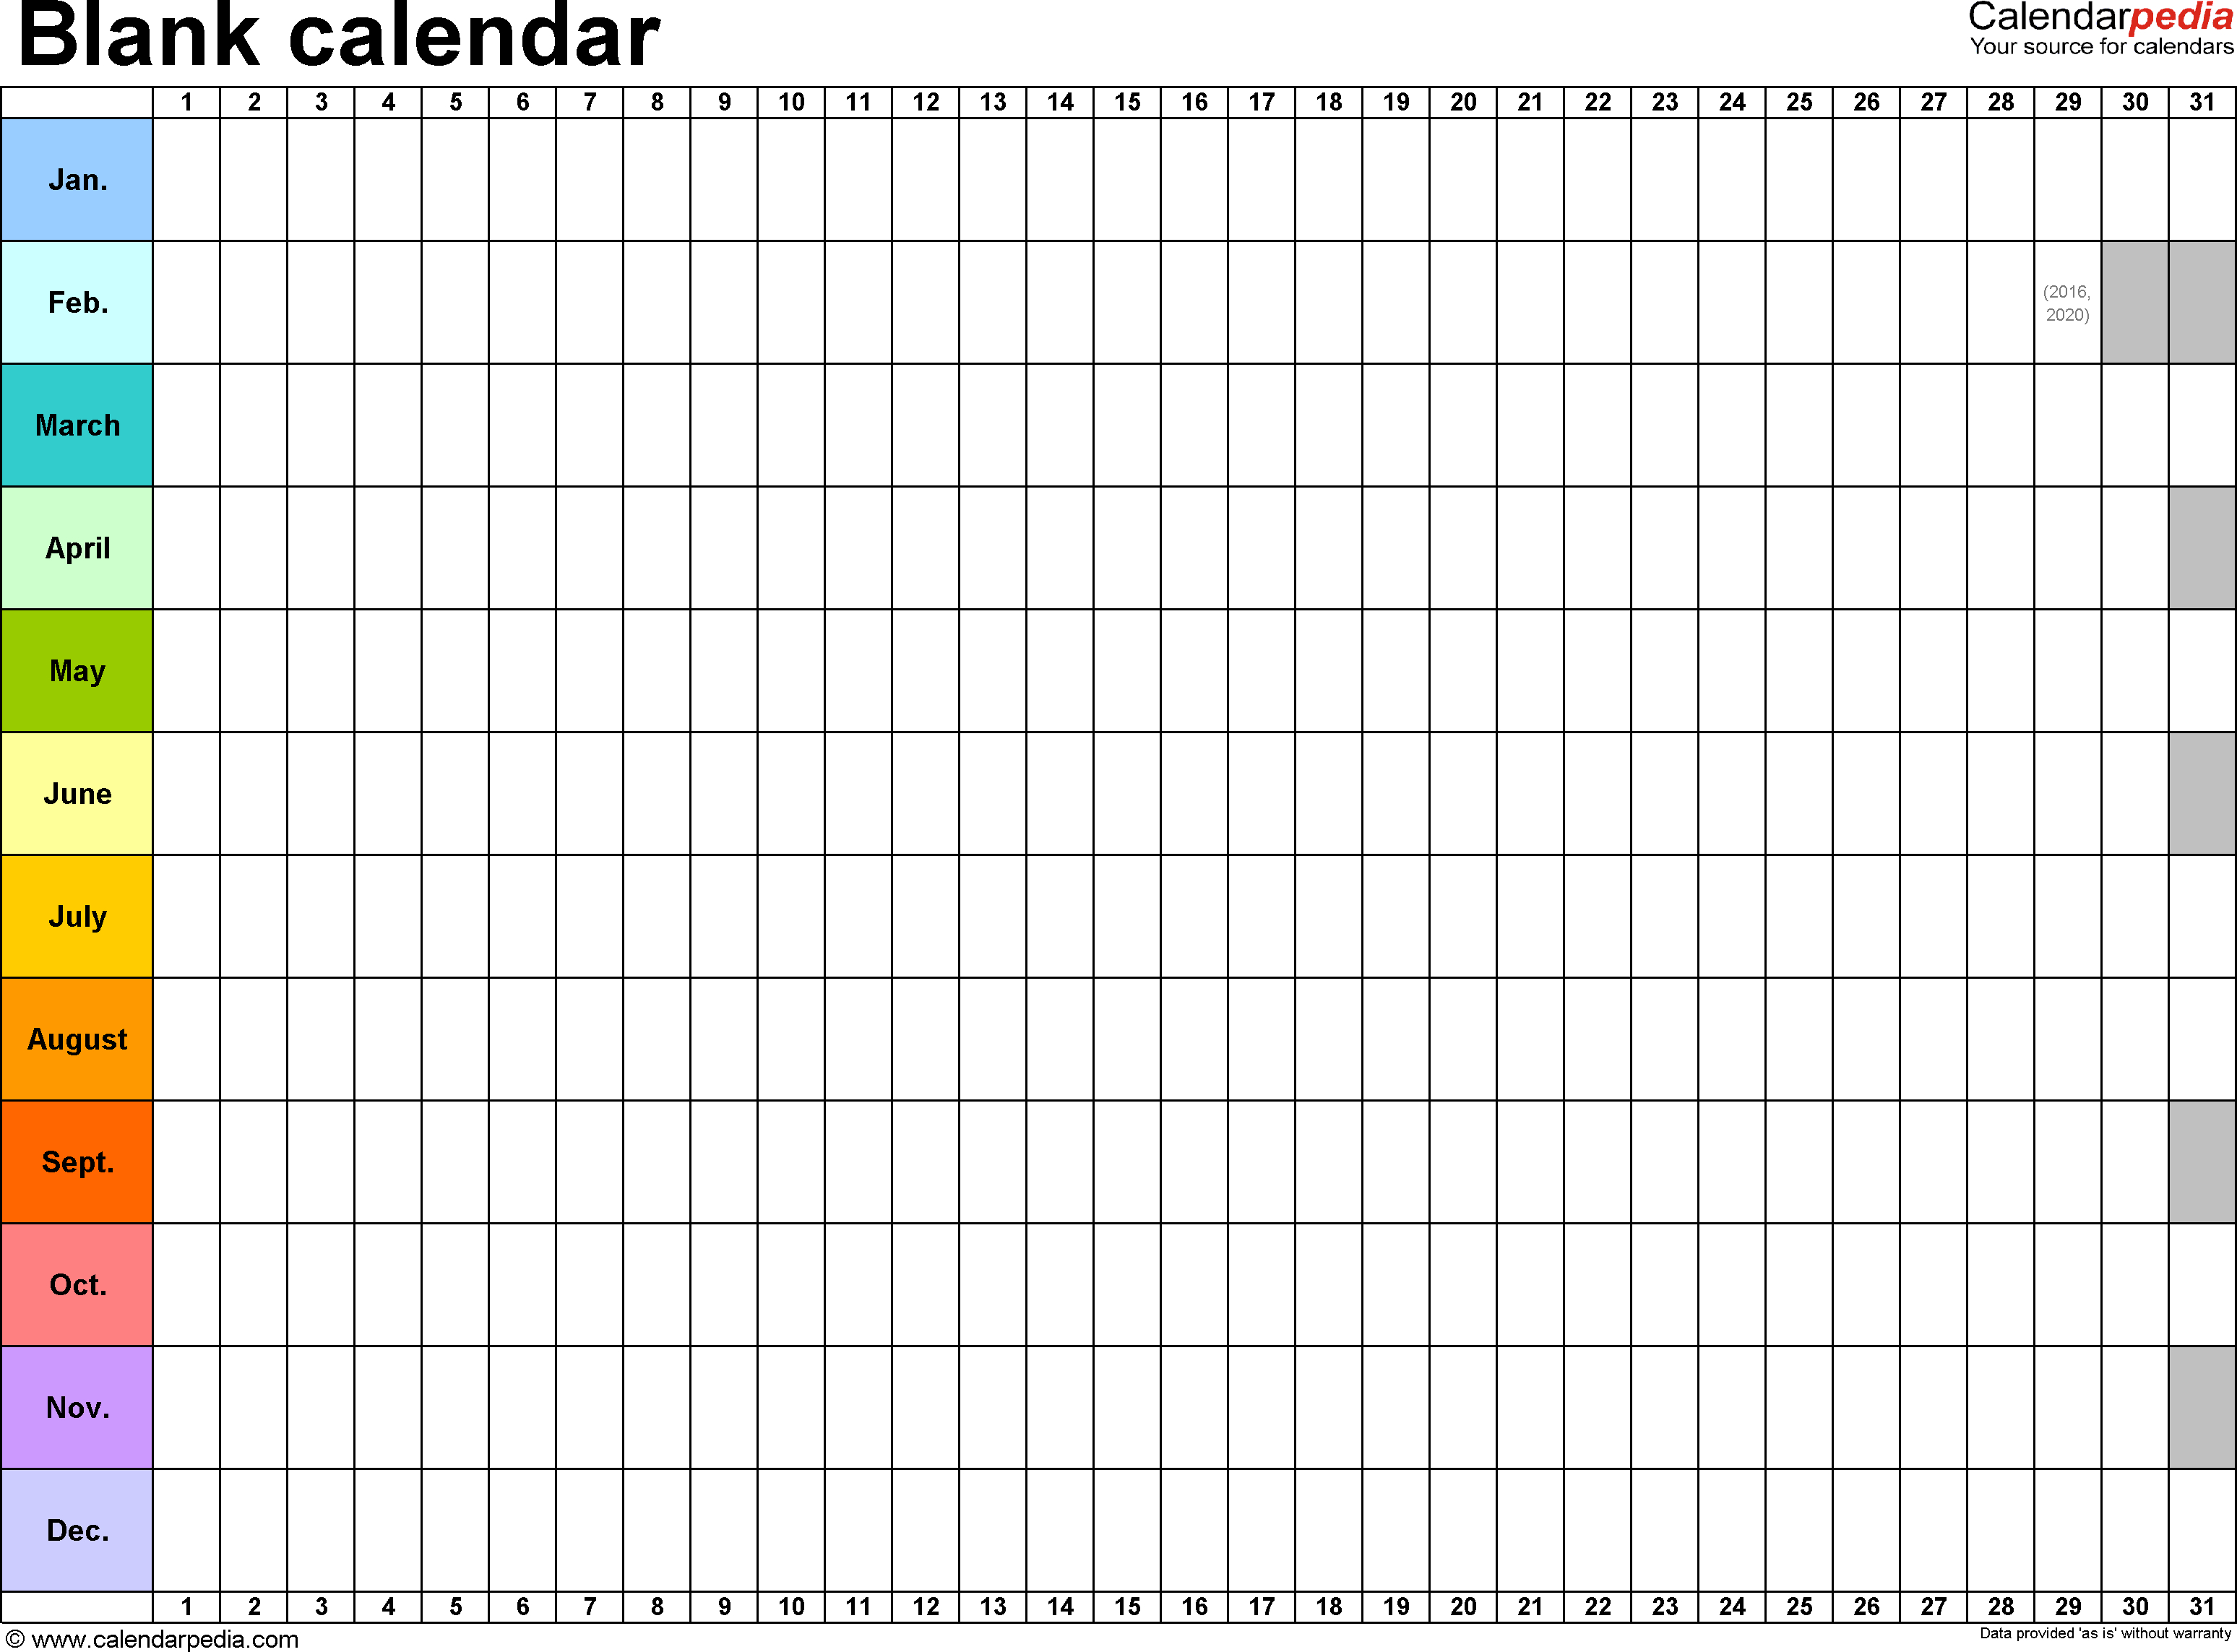 Blank Calendar - 9 Free Printable Microsoft Word Templates intended for Blank Calendar To Print By Month